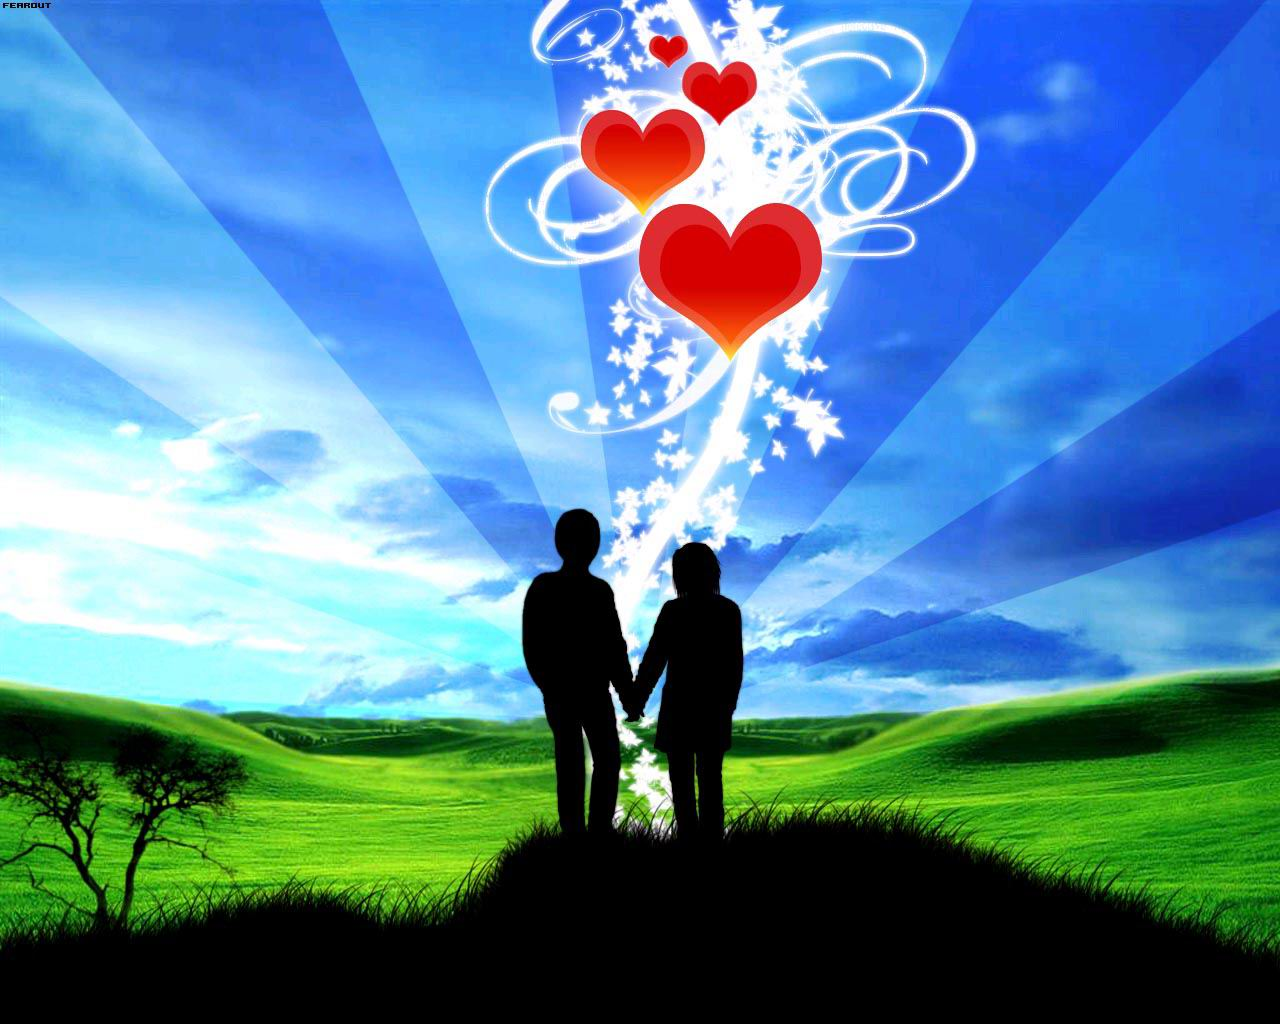 Love Wallpaper New : Love is Life: Love wallpapers new love wallpapers latest love wallpapers 2012 love hd ...